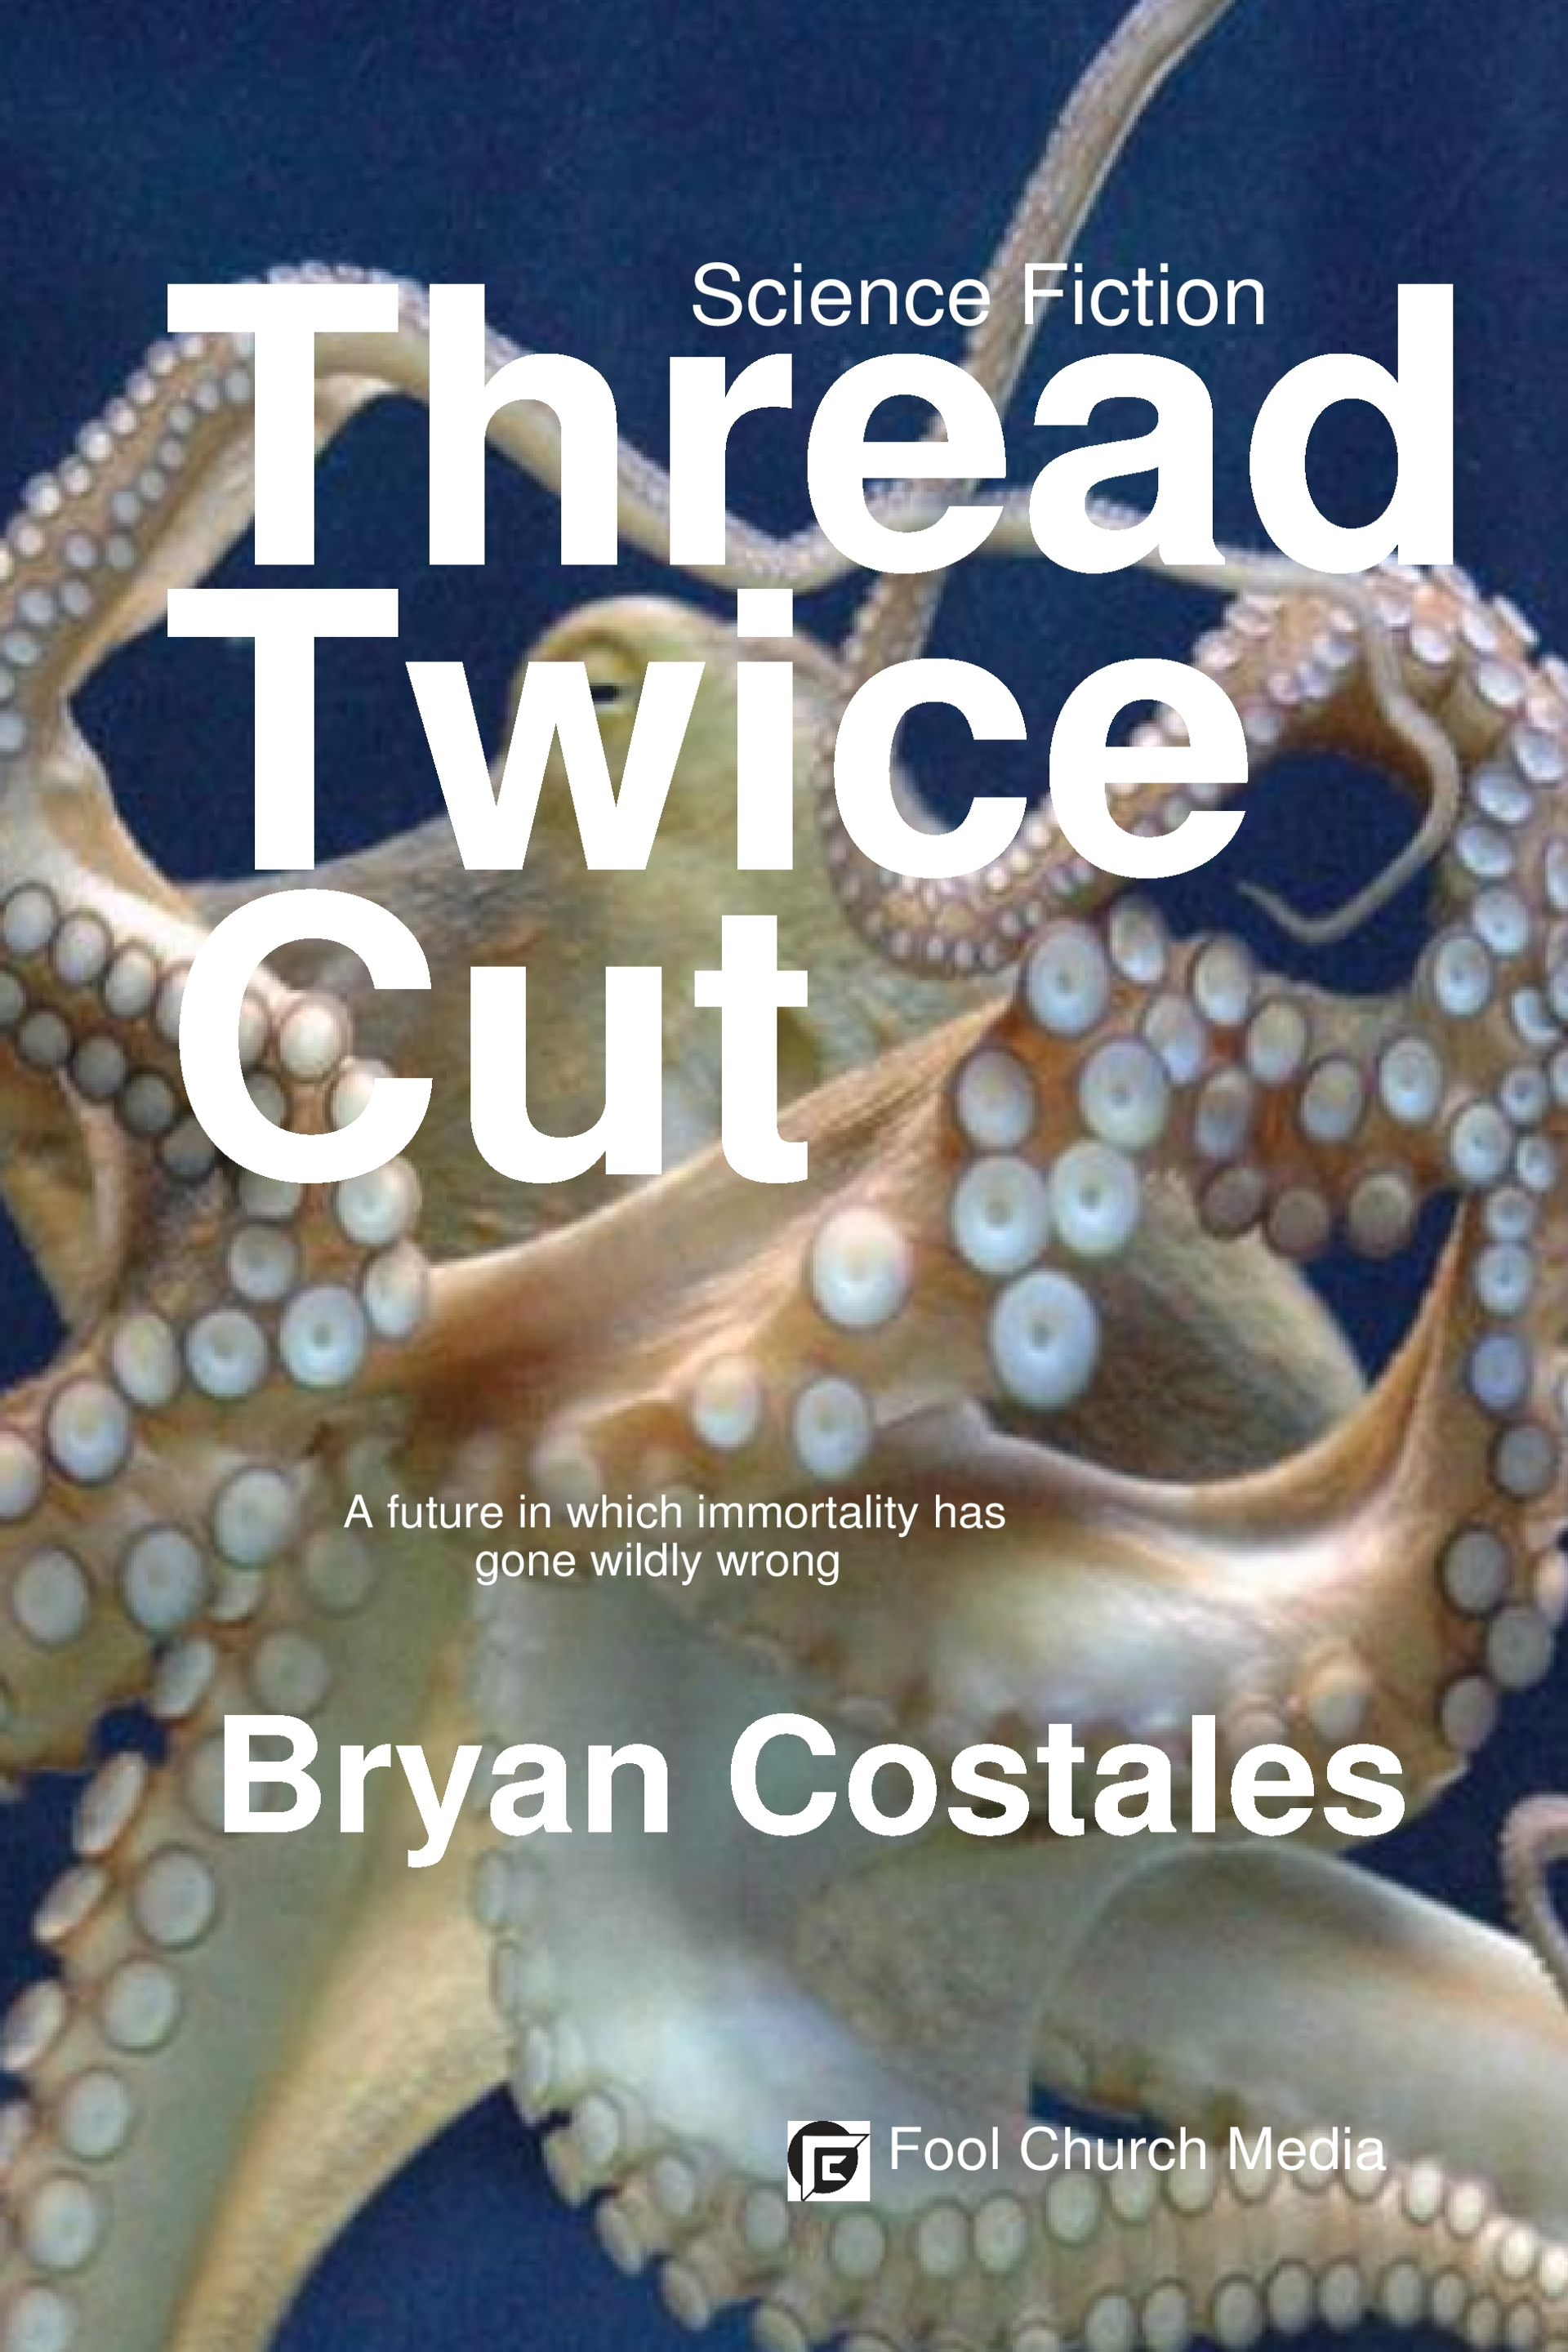 thread twice cut